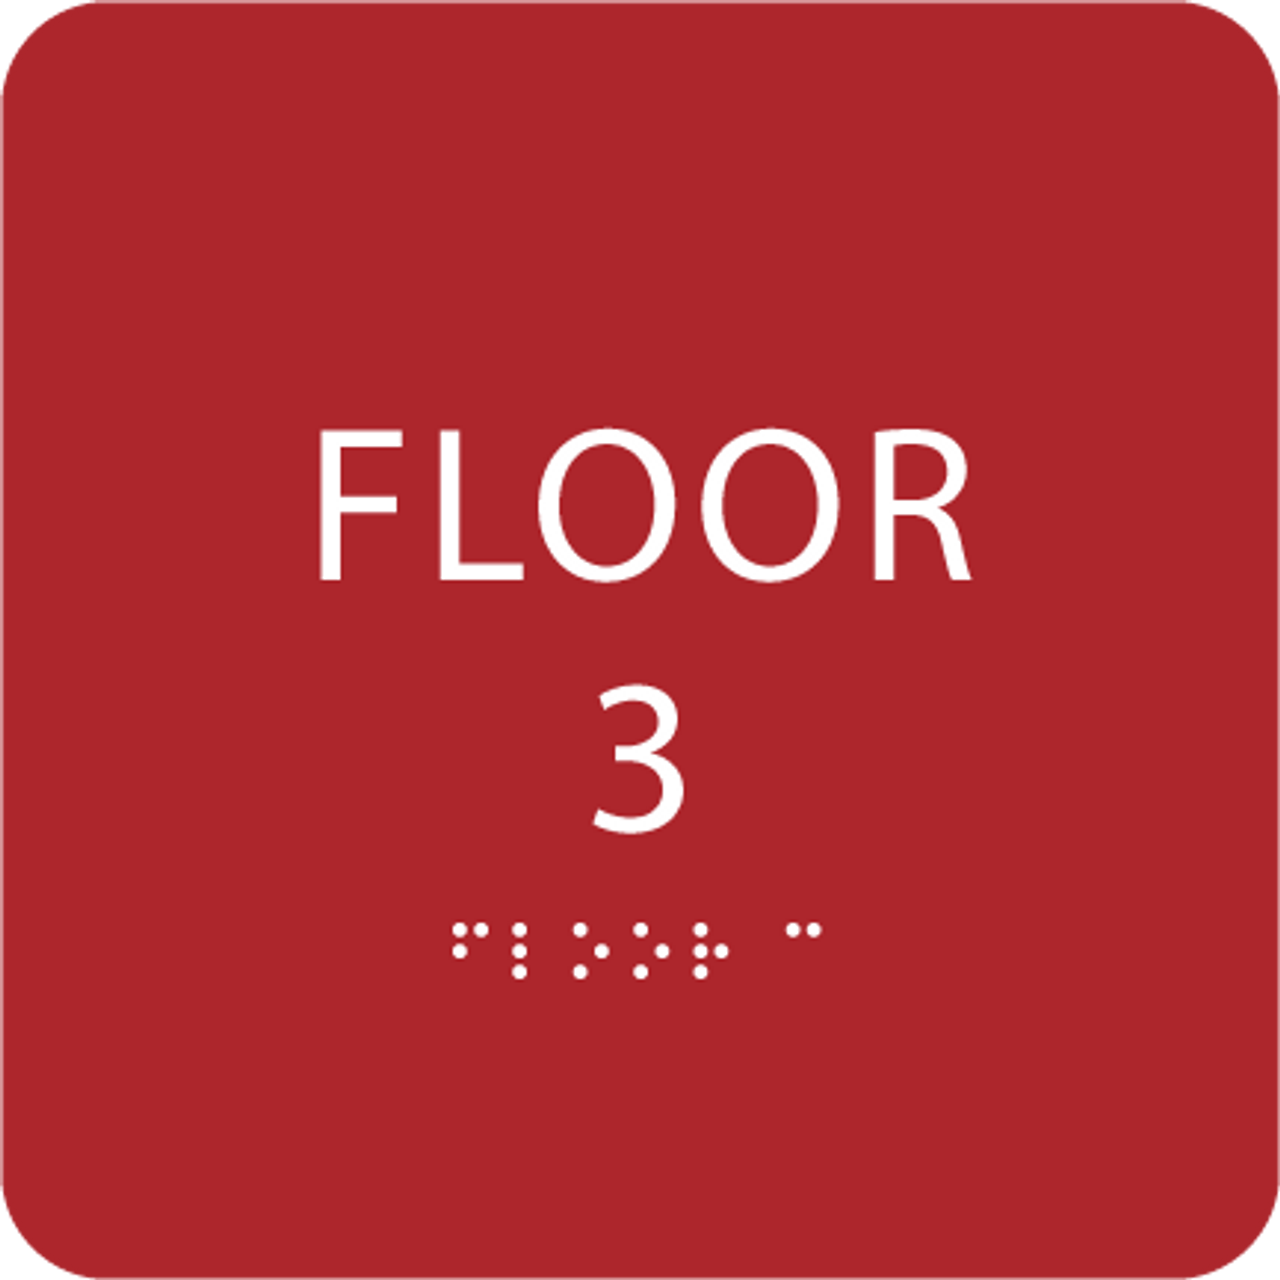 Red Floor 3 Identification Sign